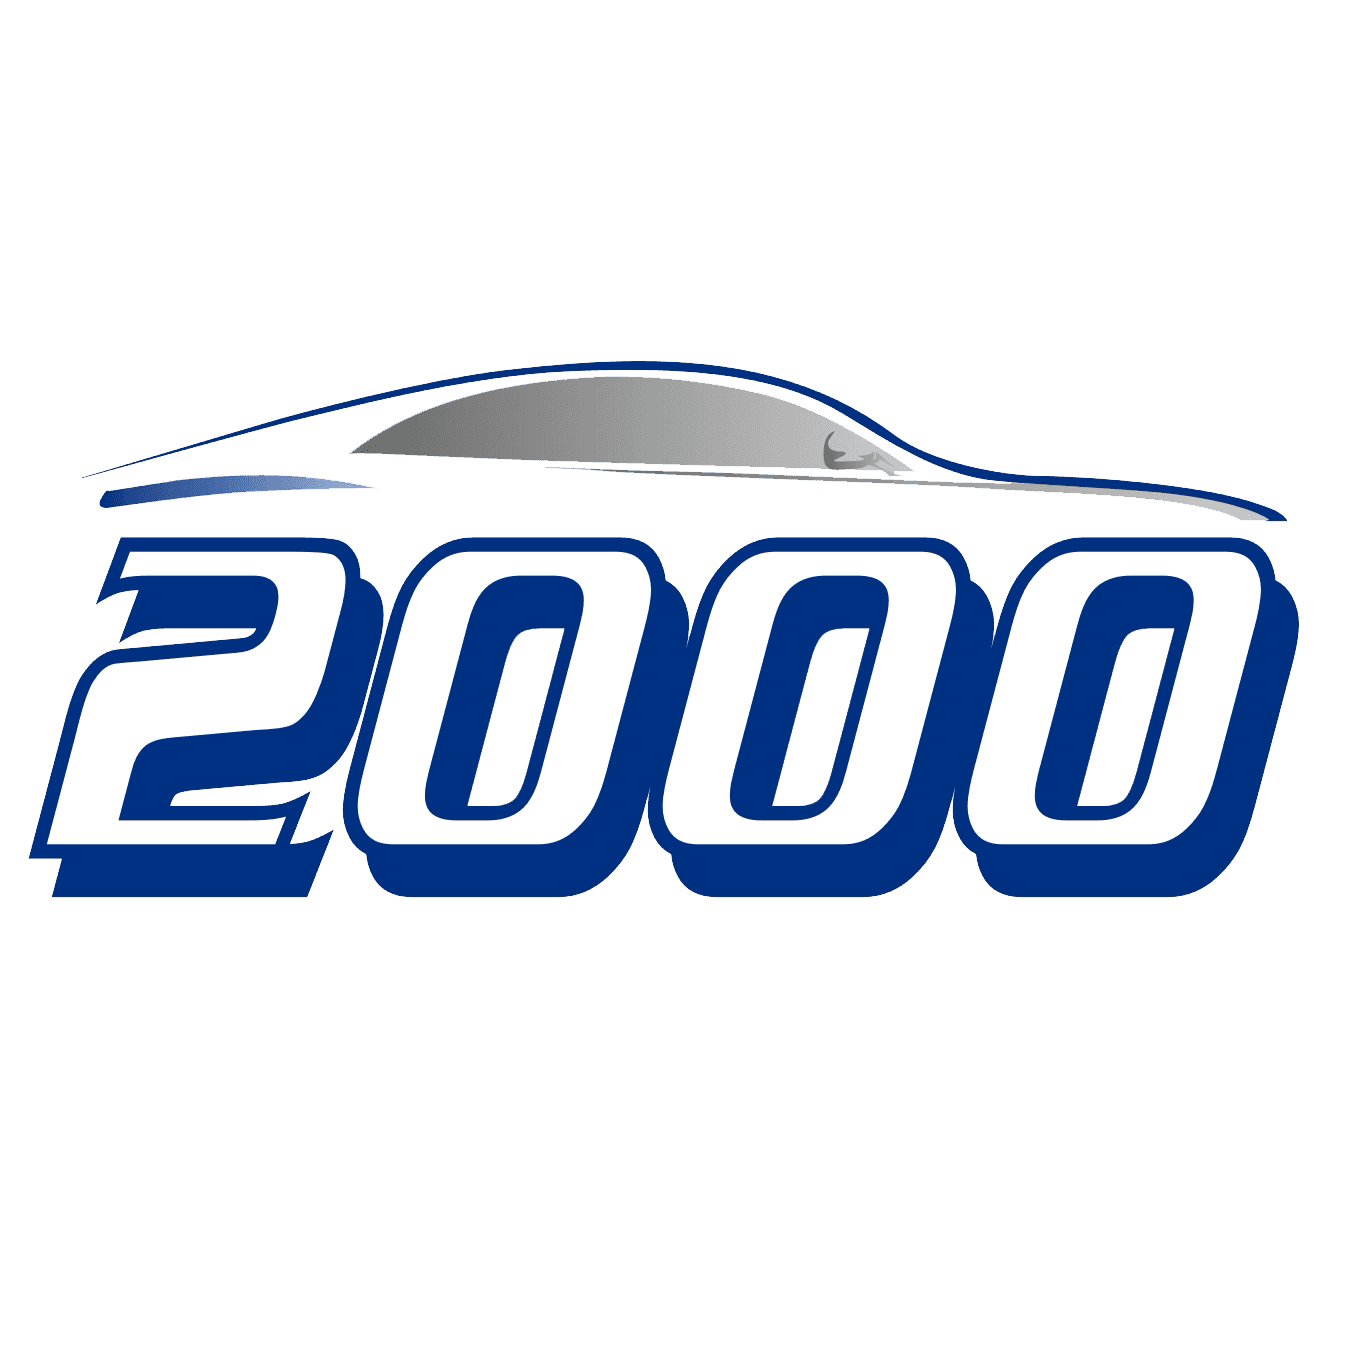 2000 Auto Collision Express & Glass logo